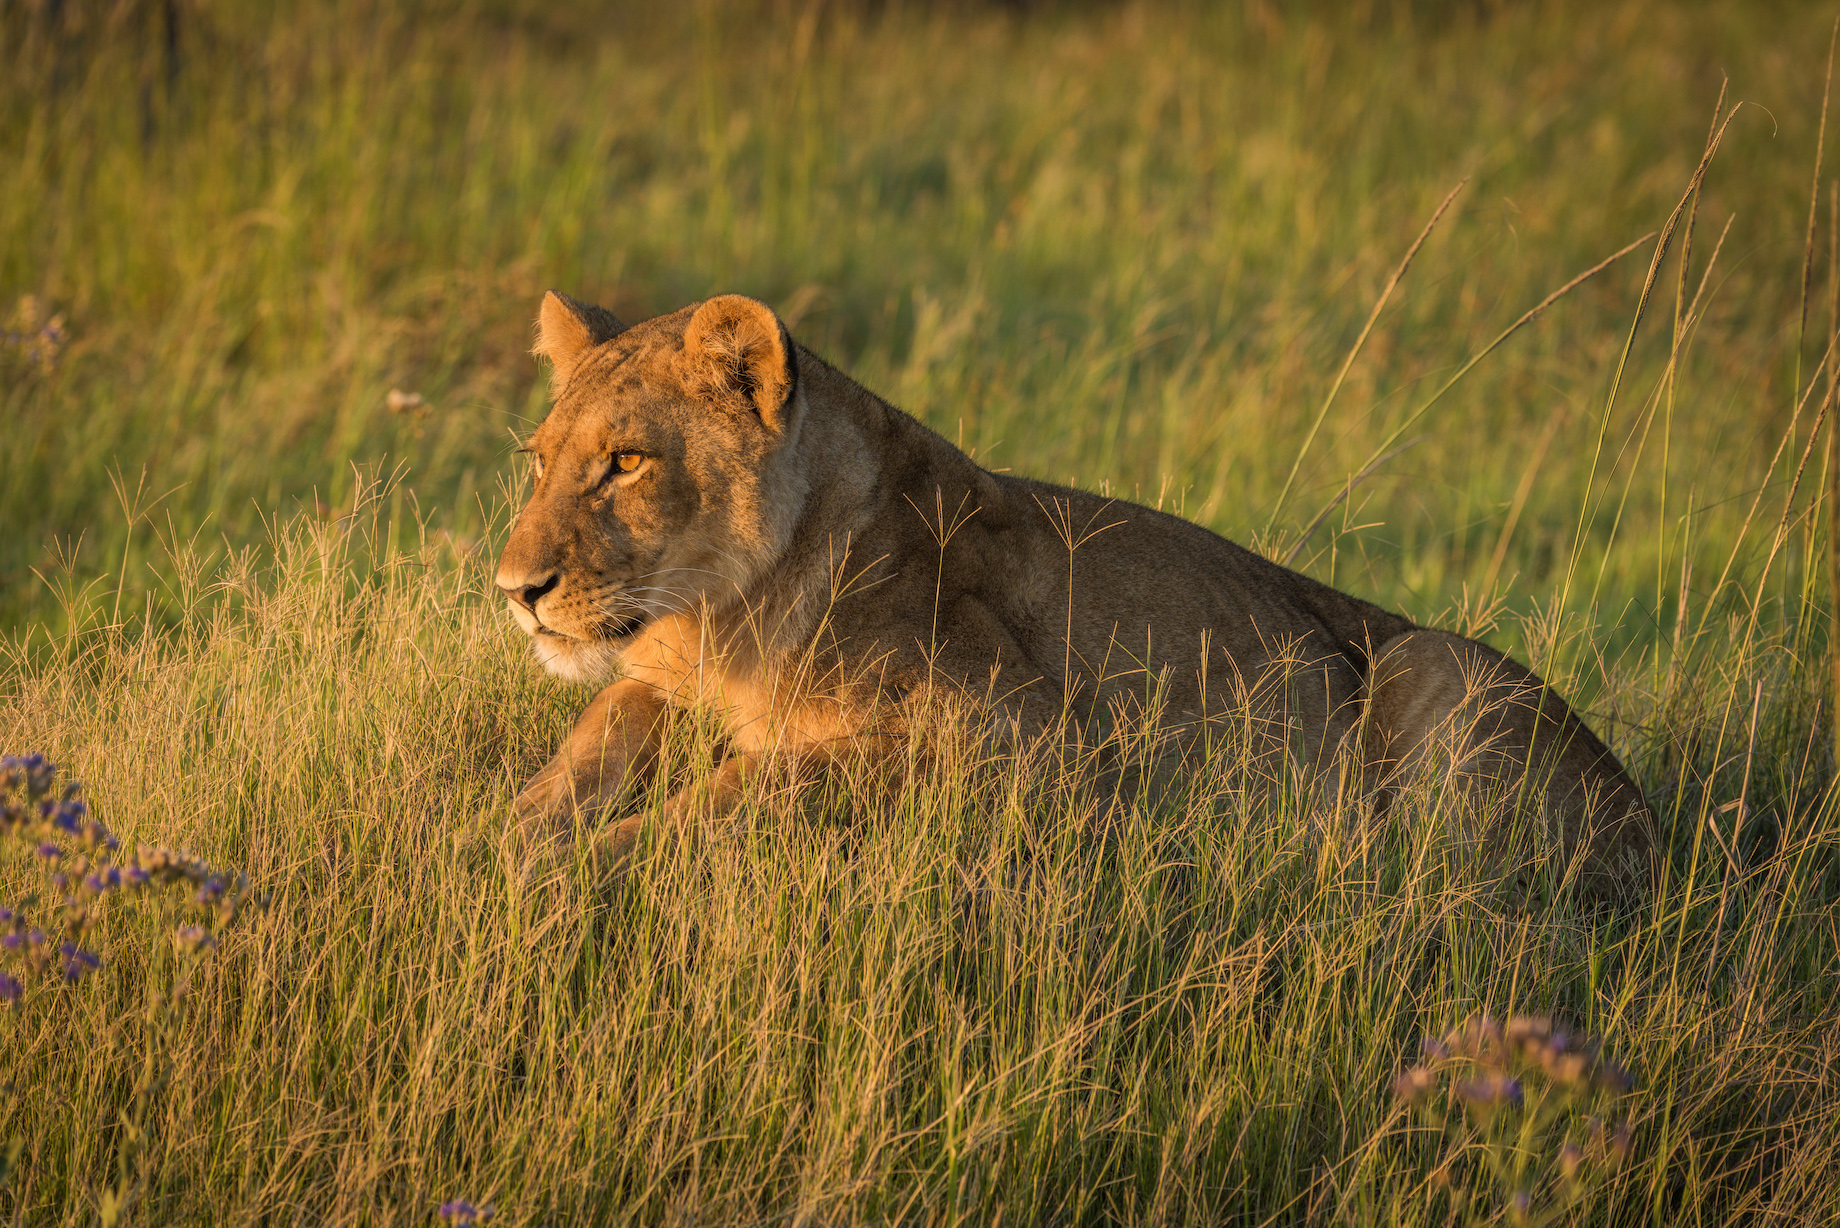 Lion lies staring in grass at dusk